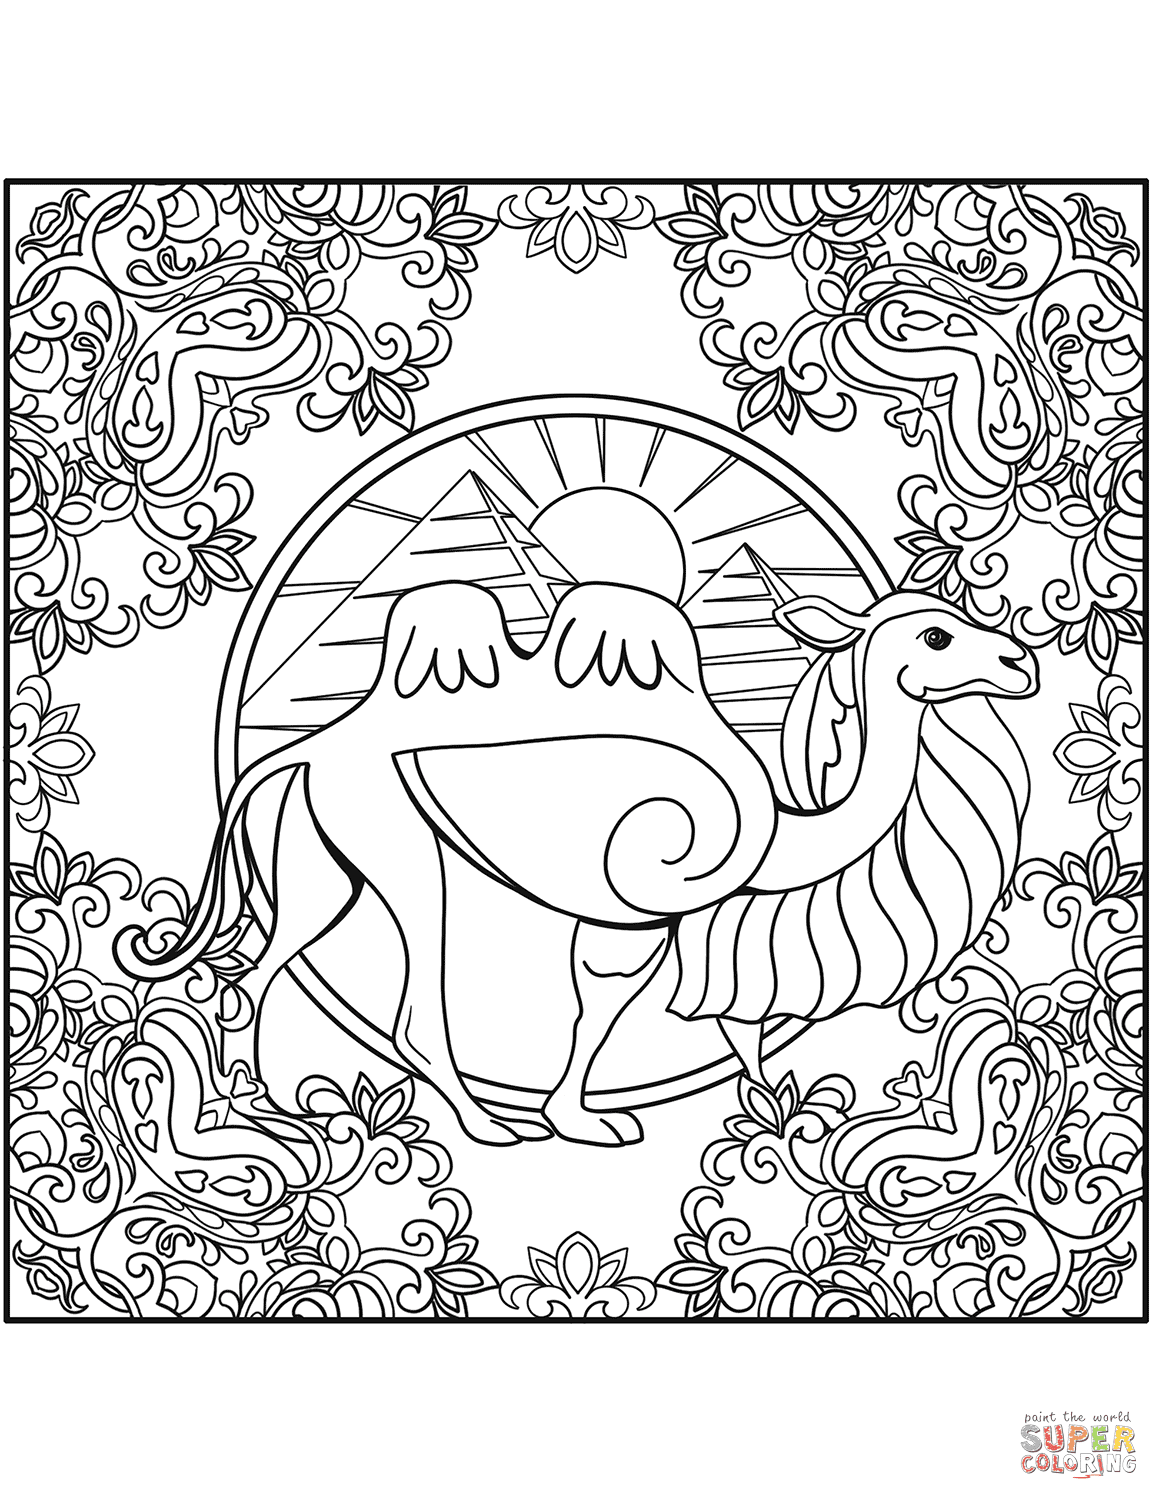 710 Top Coloring Pages Mandalas Animals  Images